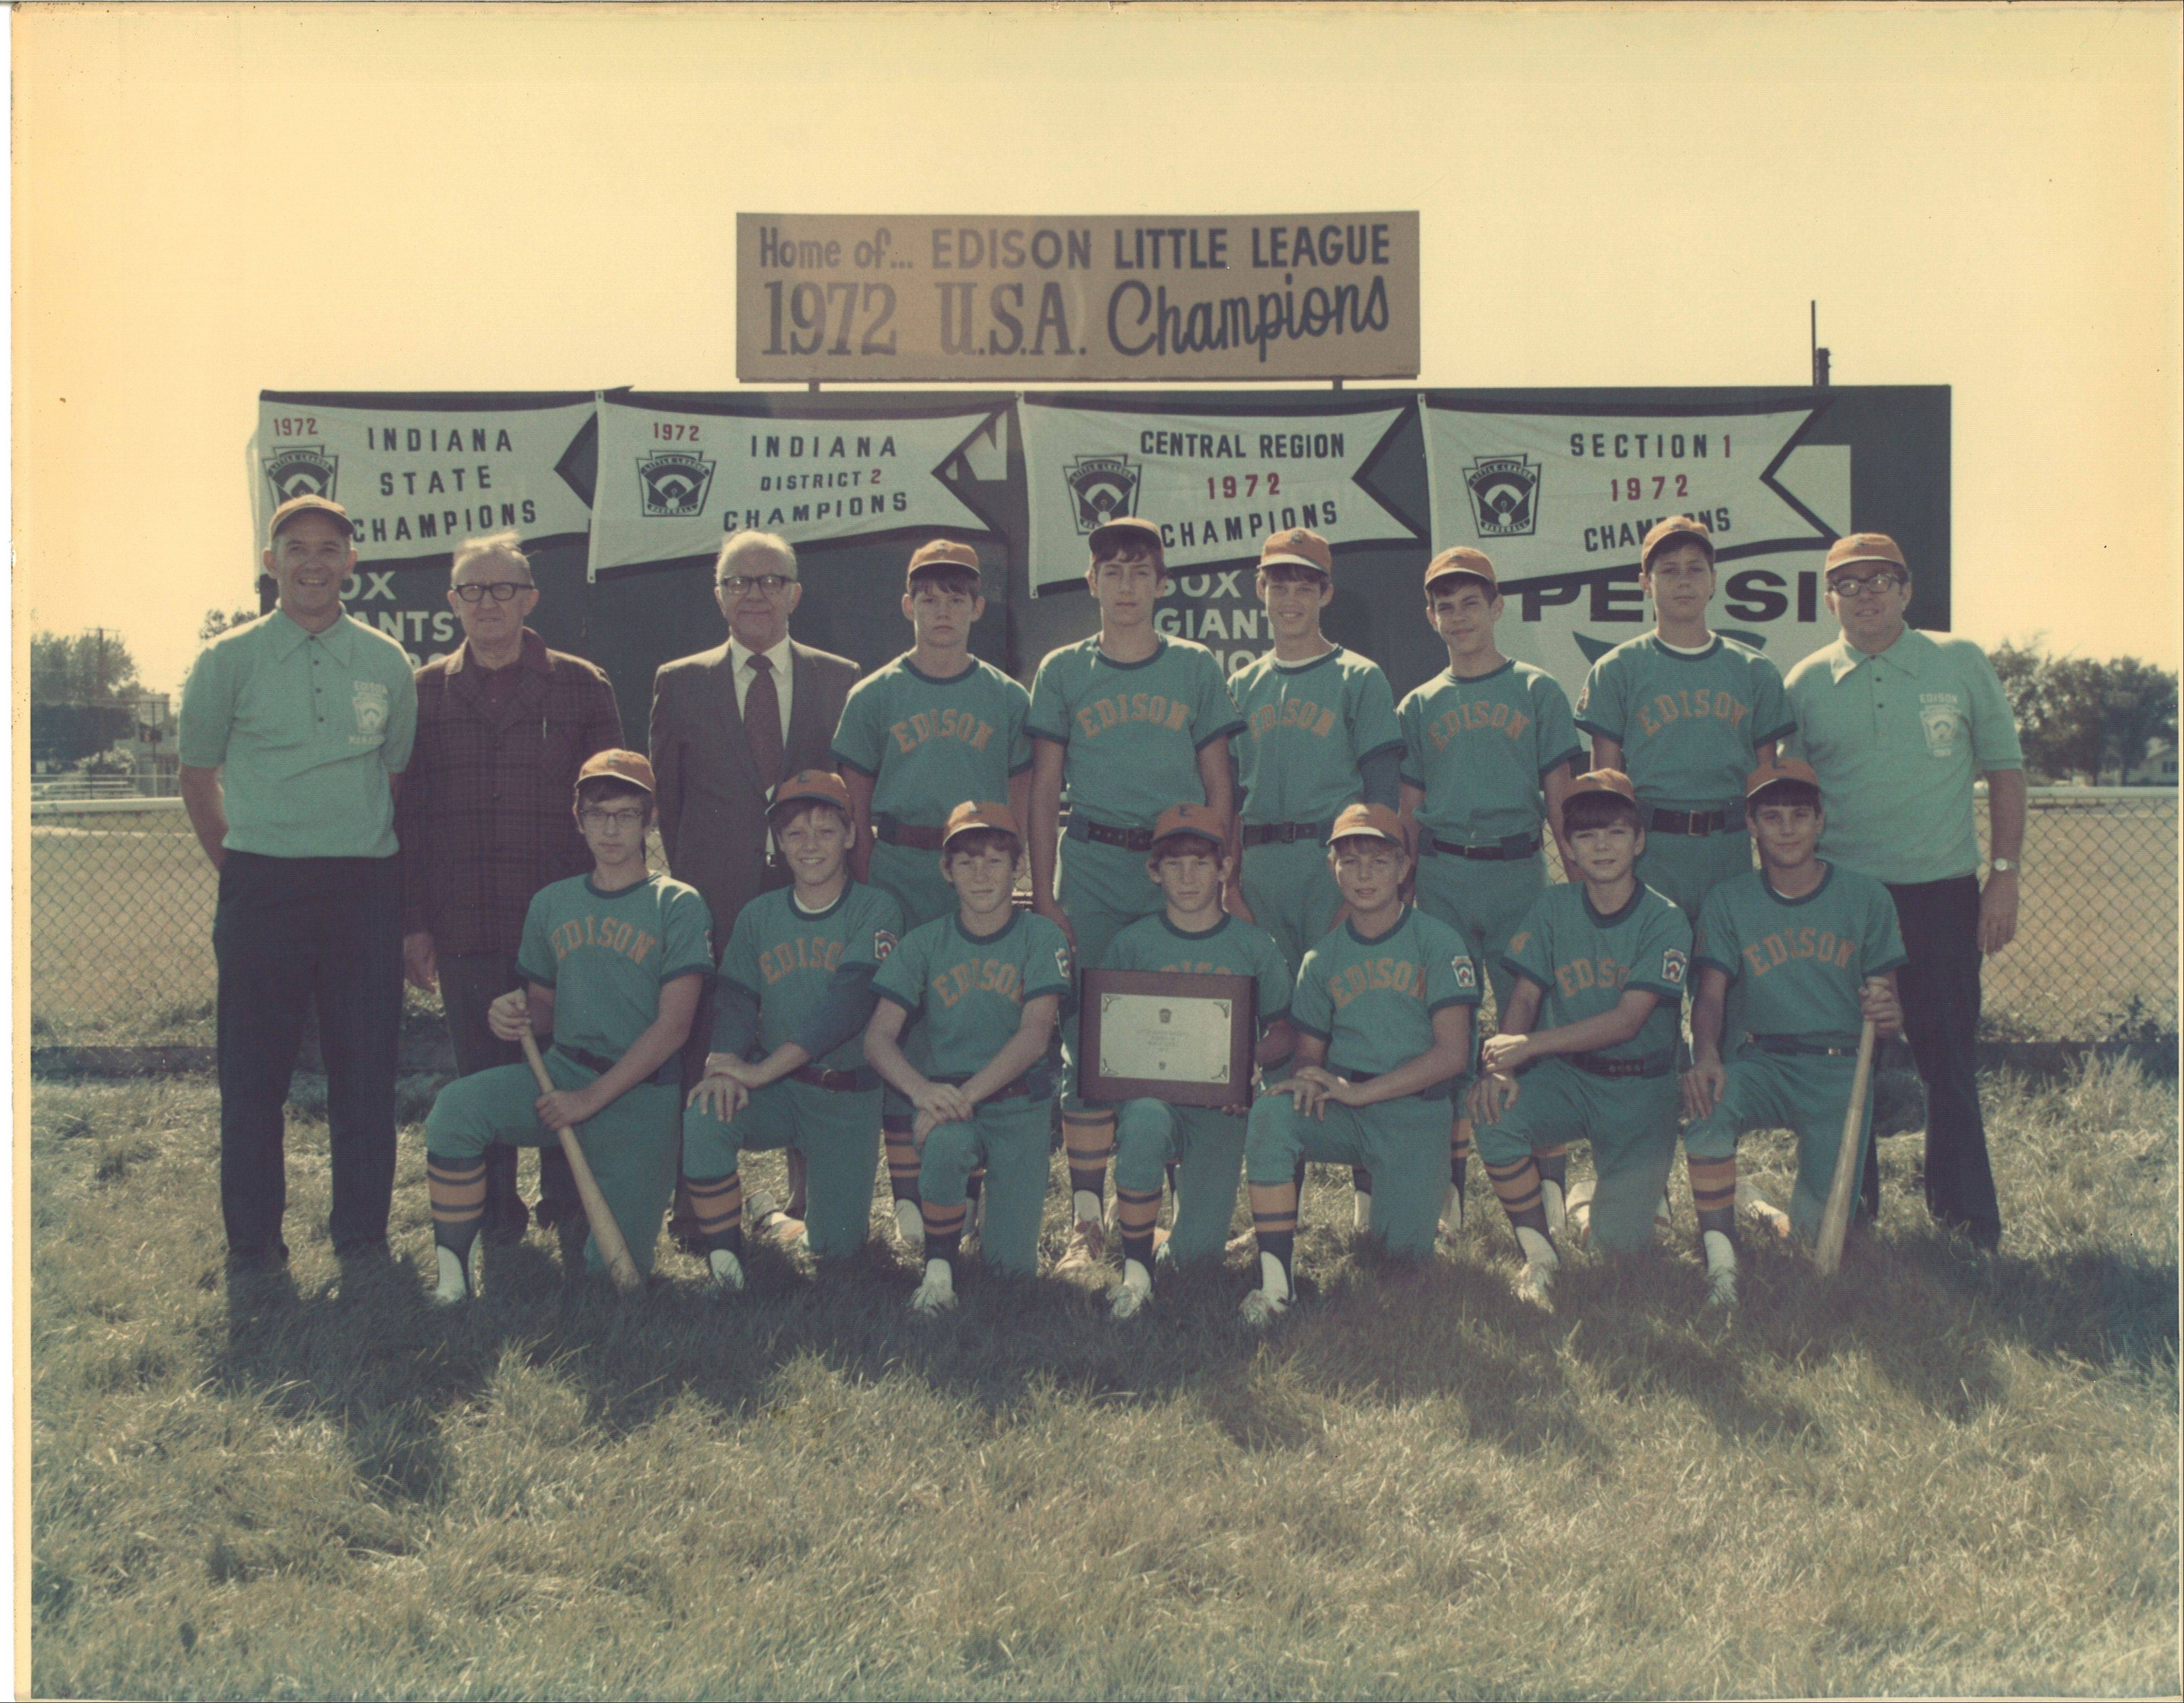 The story begins in 1972 when Coach Tom Vargulich, far left in back row, and his son Peter, second from left in first row, make it to the championship game of the Little League Baseball World Series in Williamsport, Pa. Spanning three generations and four decades, the latest chapter was written Saturday as 16-year-old Tommy Vargulich played on the same field in a special exhibition game for kids with developmental and physical disabilities.